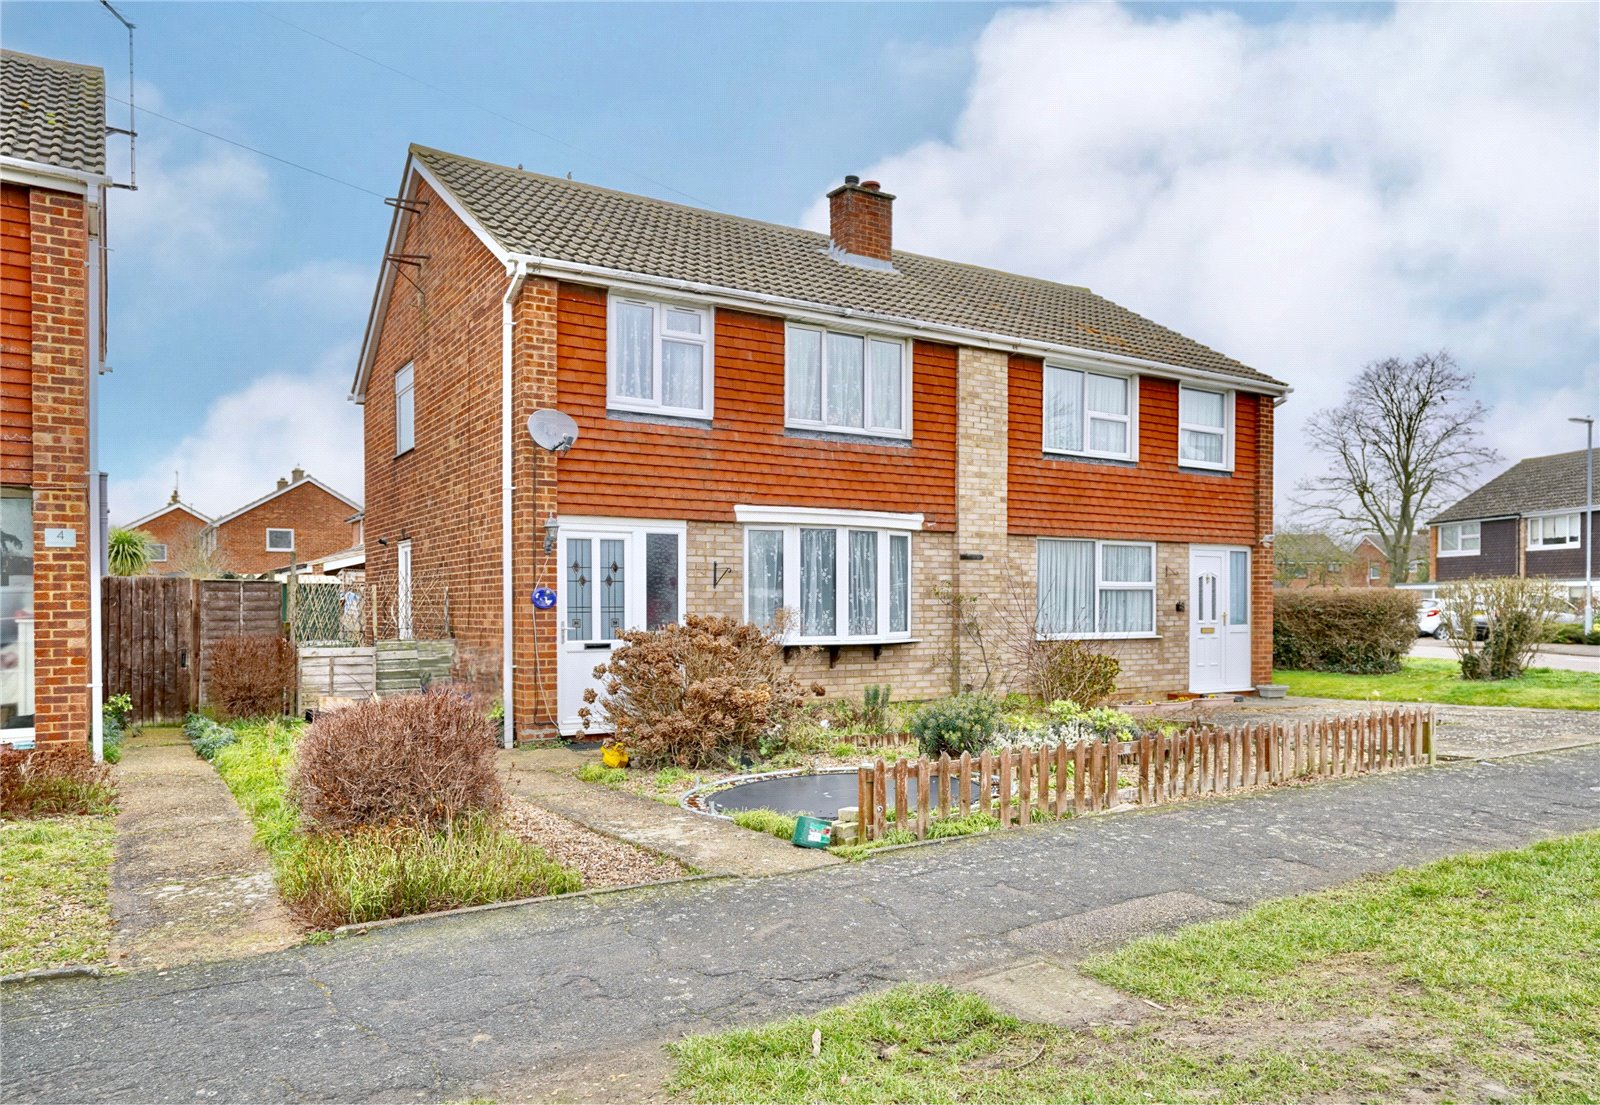 3 bed house for sale in Little Paxton, PE19 6LU, PE19